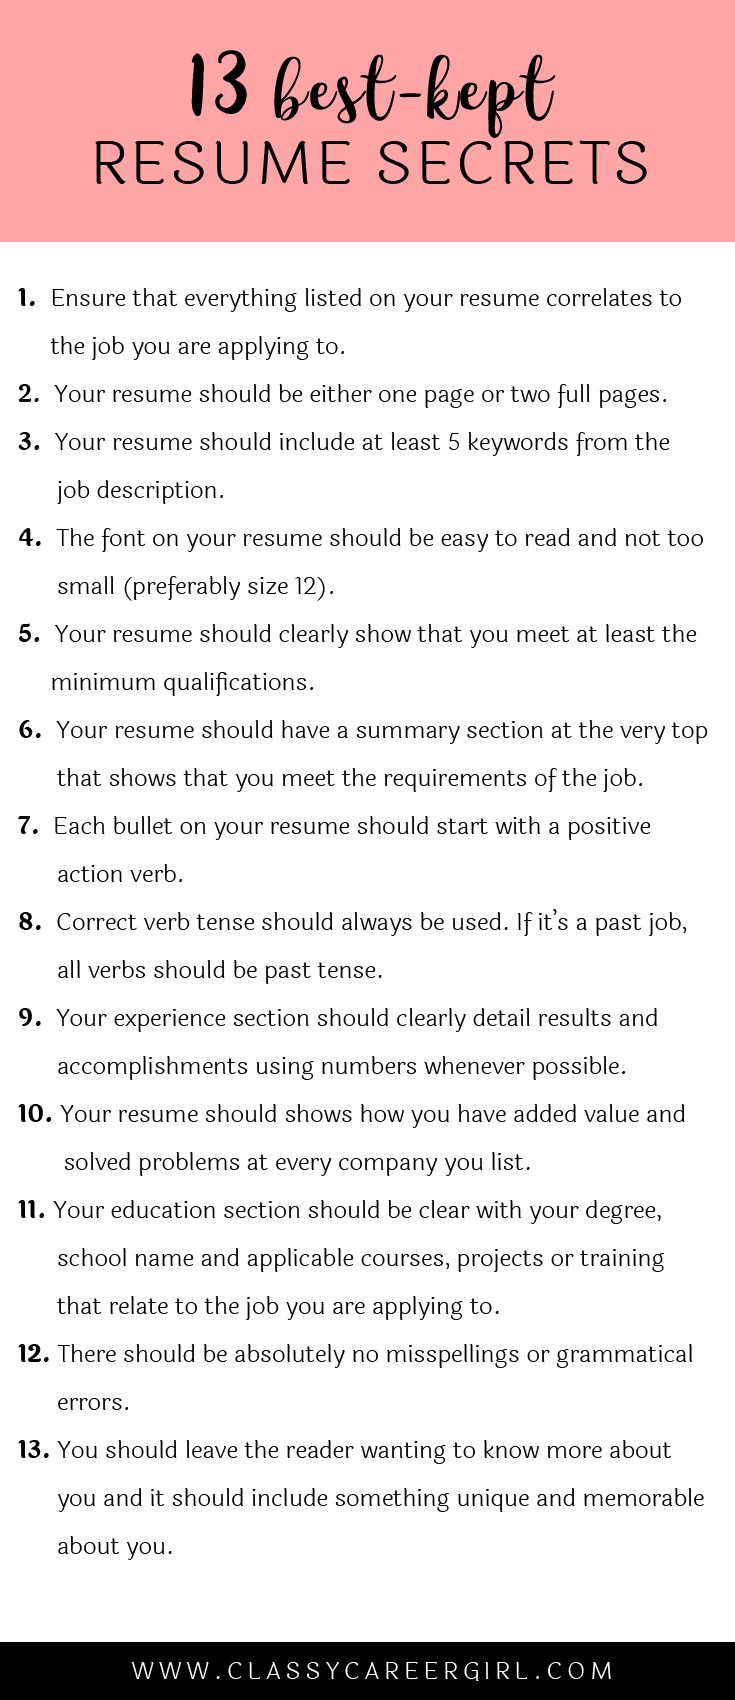 Opposenewapstandardsus  Unique  Ideas About Resume On Pinterest  Cv Format Resume Cv And  With Extraordinary Some Hiring Managers Will Toss Your Resume Out If You Dont Know These  With Nice To Make A Resume Also Science Resumes In Addition System Administrator Resume Examples And Top Resume Writers As Well As Project Manager Resume Template Additionally Nursing Student Resume Objective From Pinterestcom With Opposenewapstandardsus  Extraordinary  Ideas About Resume On Pinterest  Cv Format Resume Cv And  With Nice Some Hiring Managers Will Toss Your Resume Out If You Dont Know These  And Unique To Make A Resume Also Science Resumes In Addition System Administrator Resume Examples From Pinterestcom